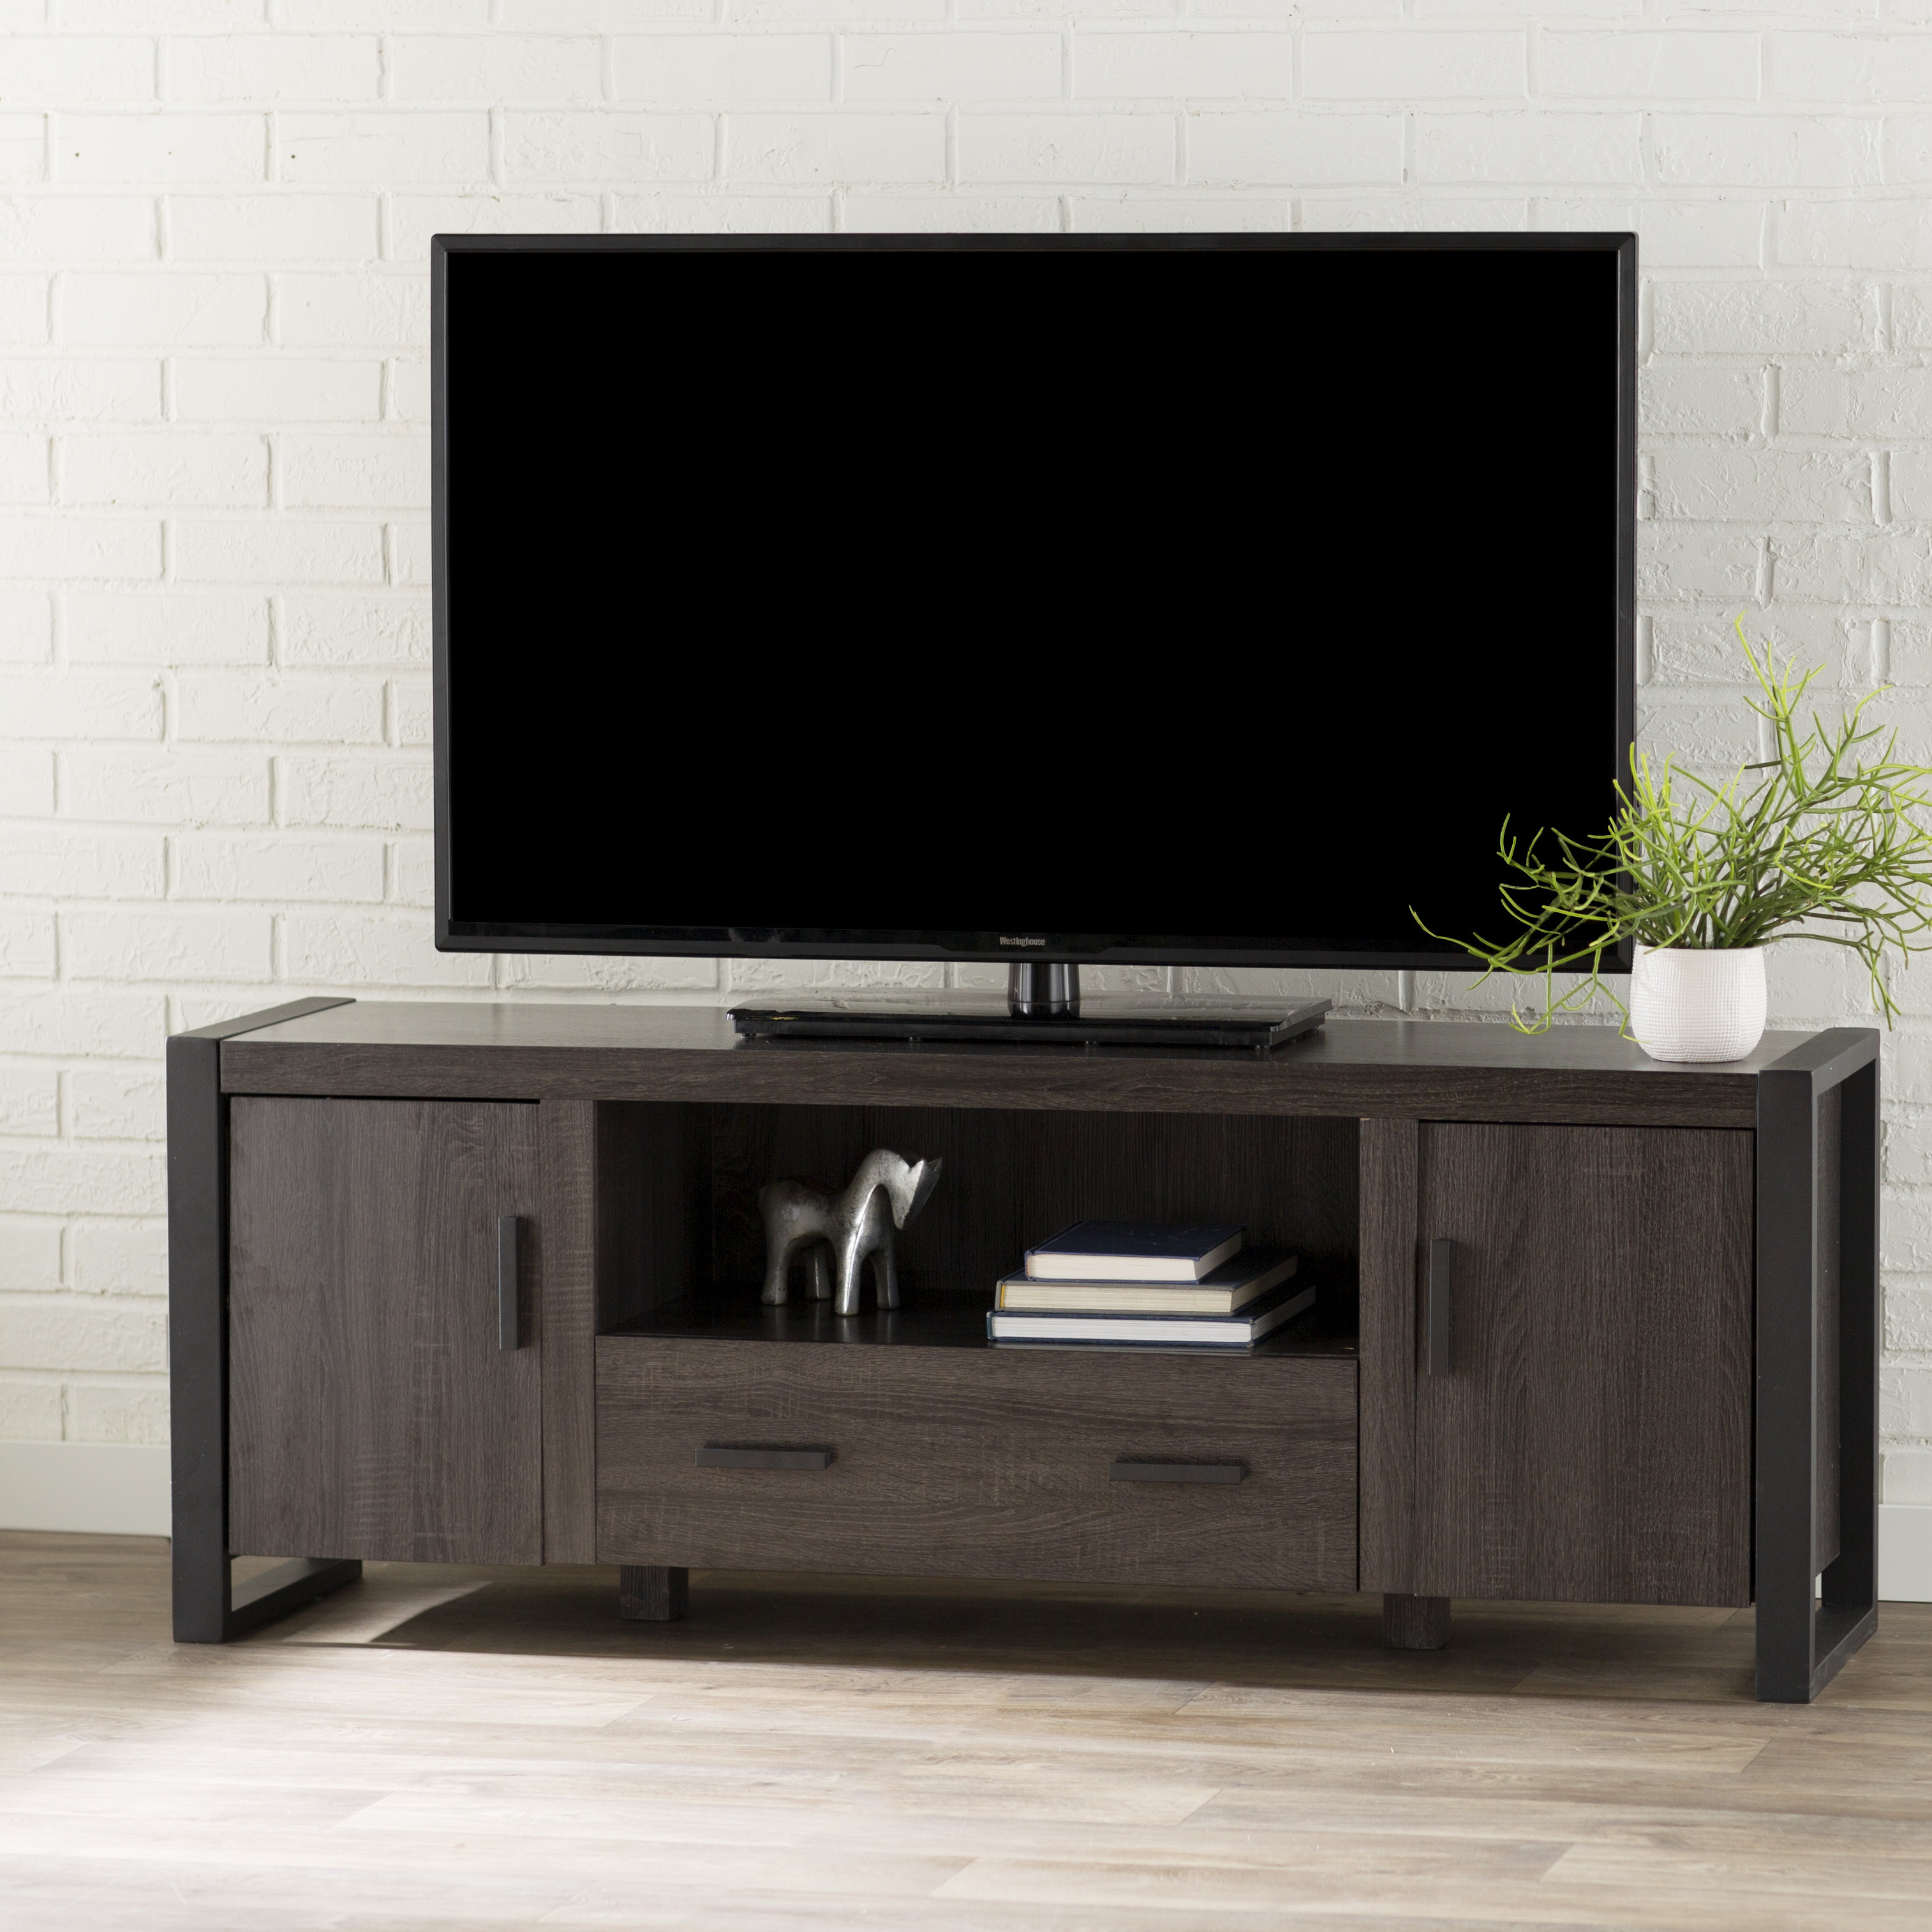 Modern Grey Tv Stands | Allmodern With Regard To Sinclair Grey 68 Inch Tv Stands (View 19 of 30)